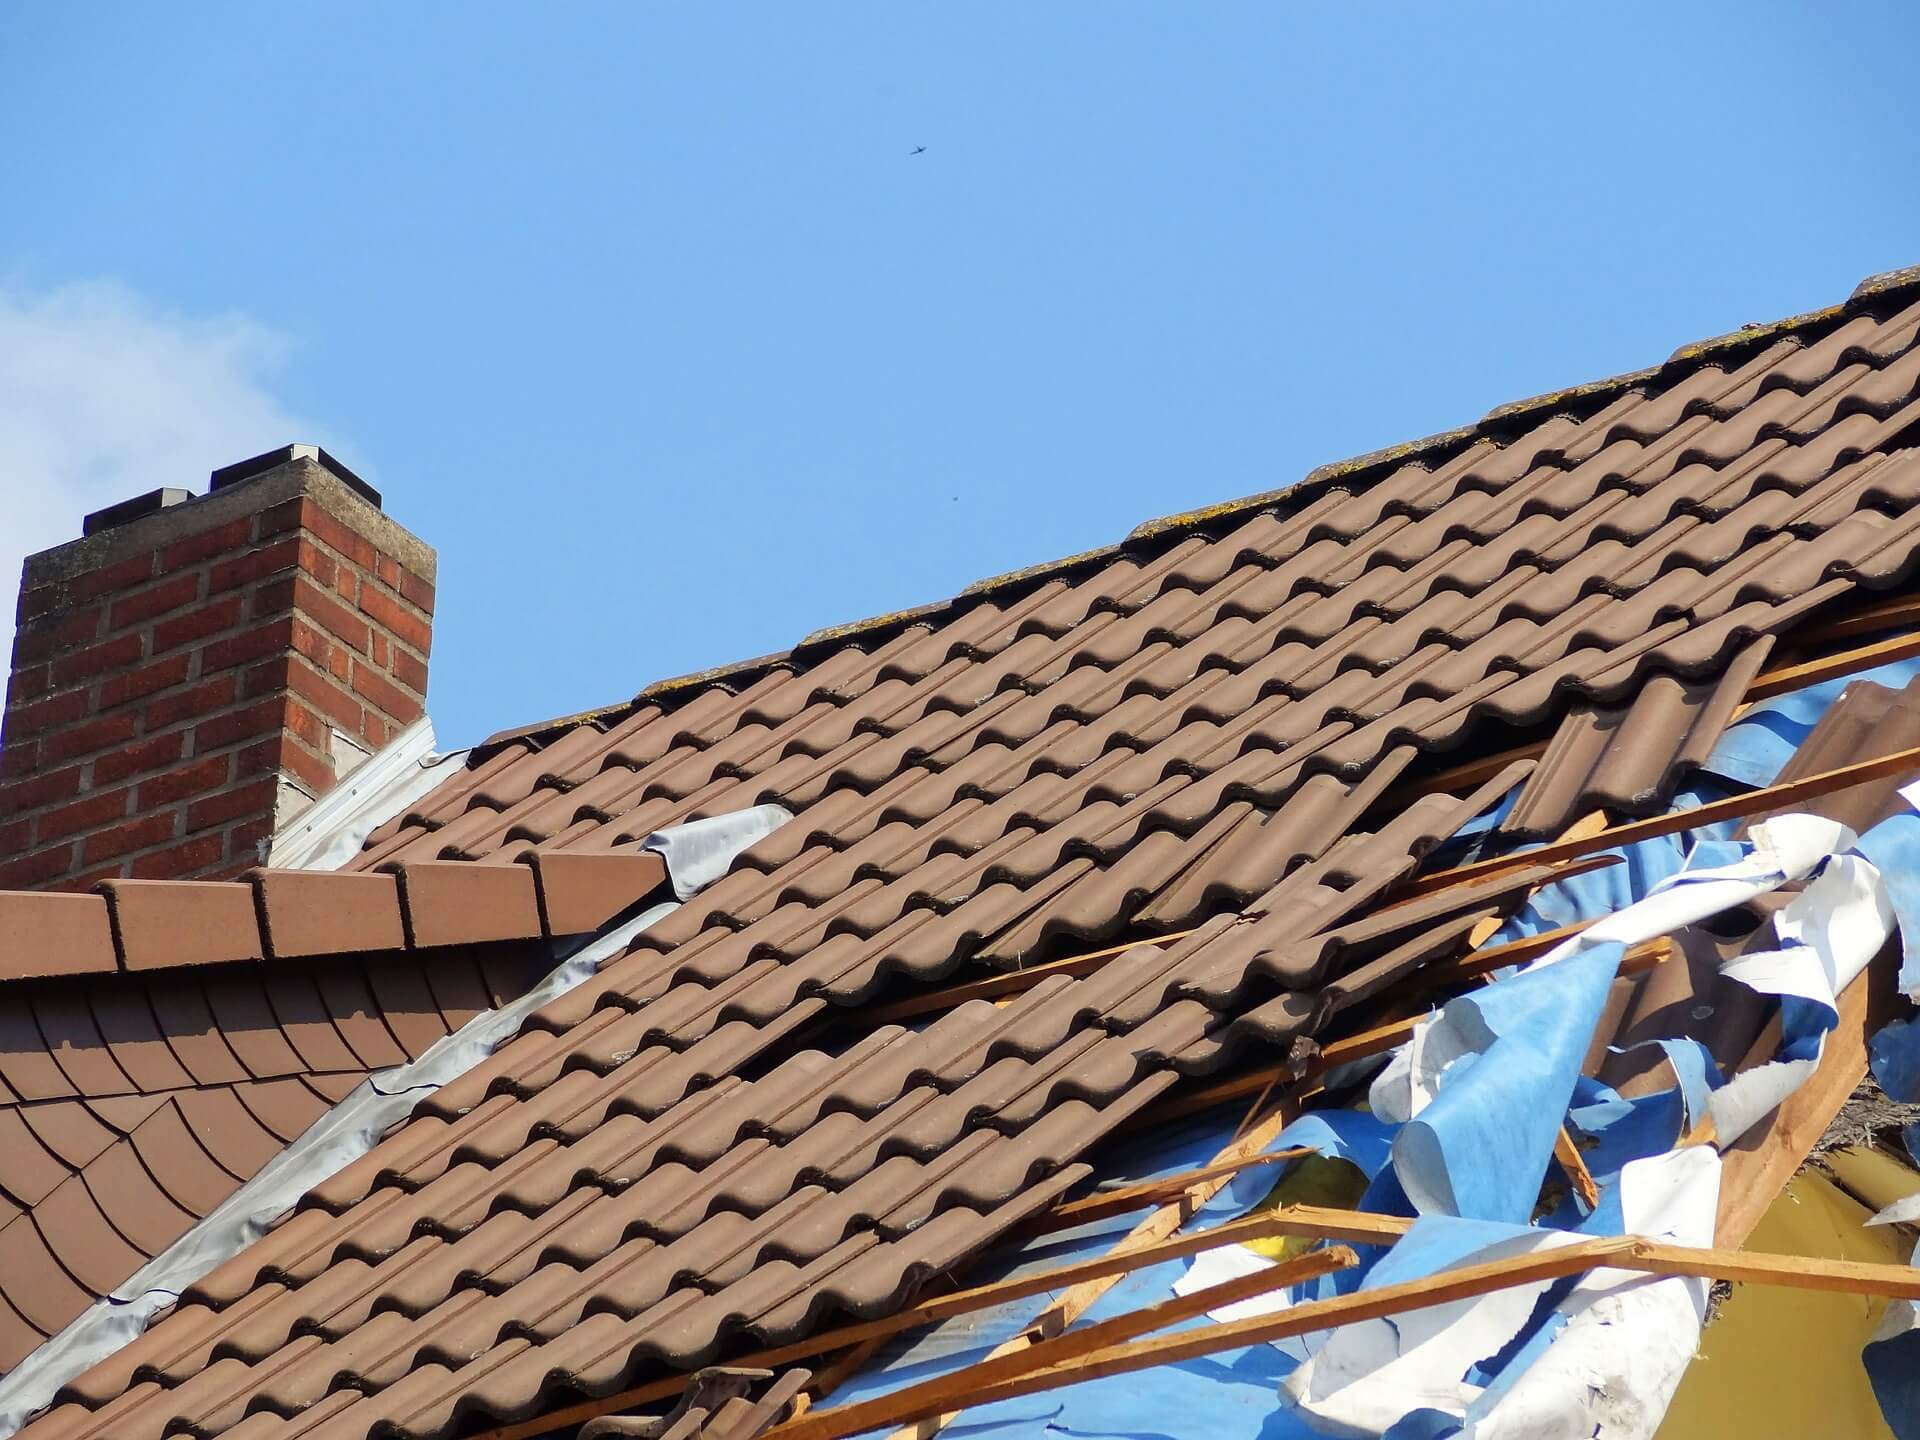 Poorly Constructed Tile Roofs